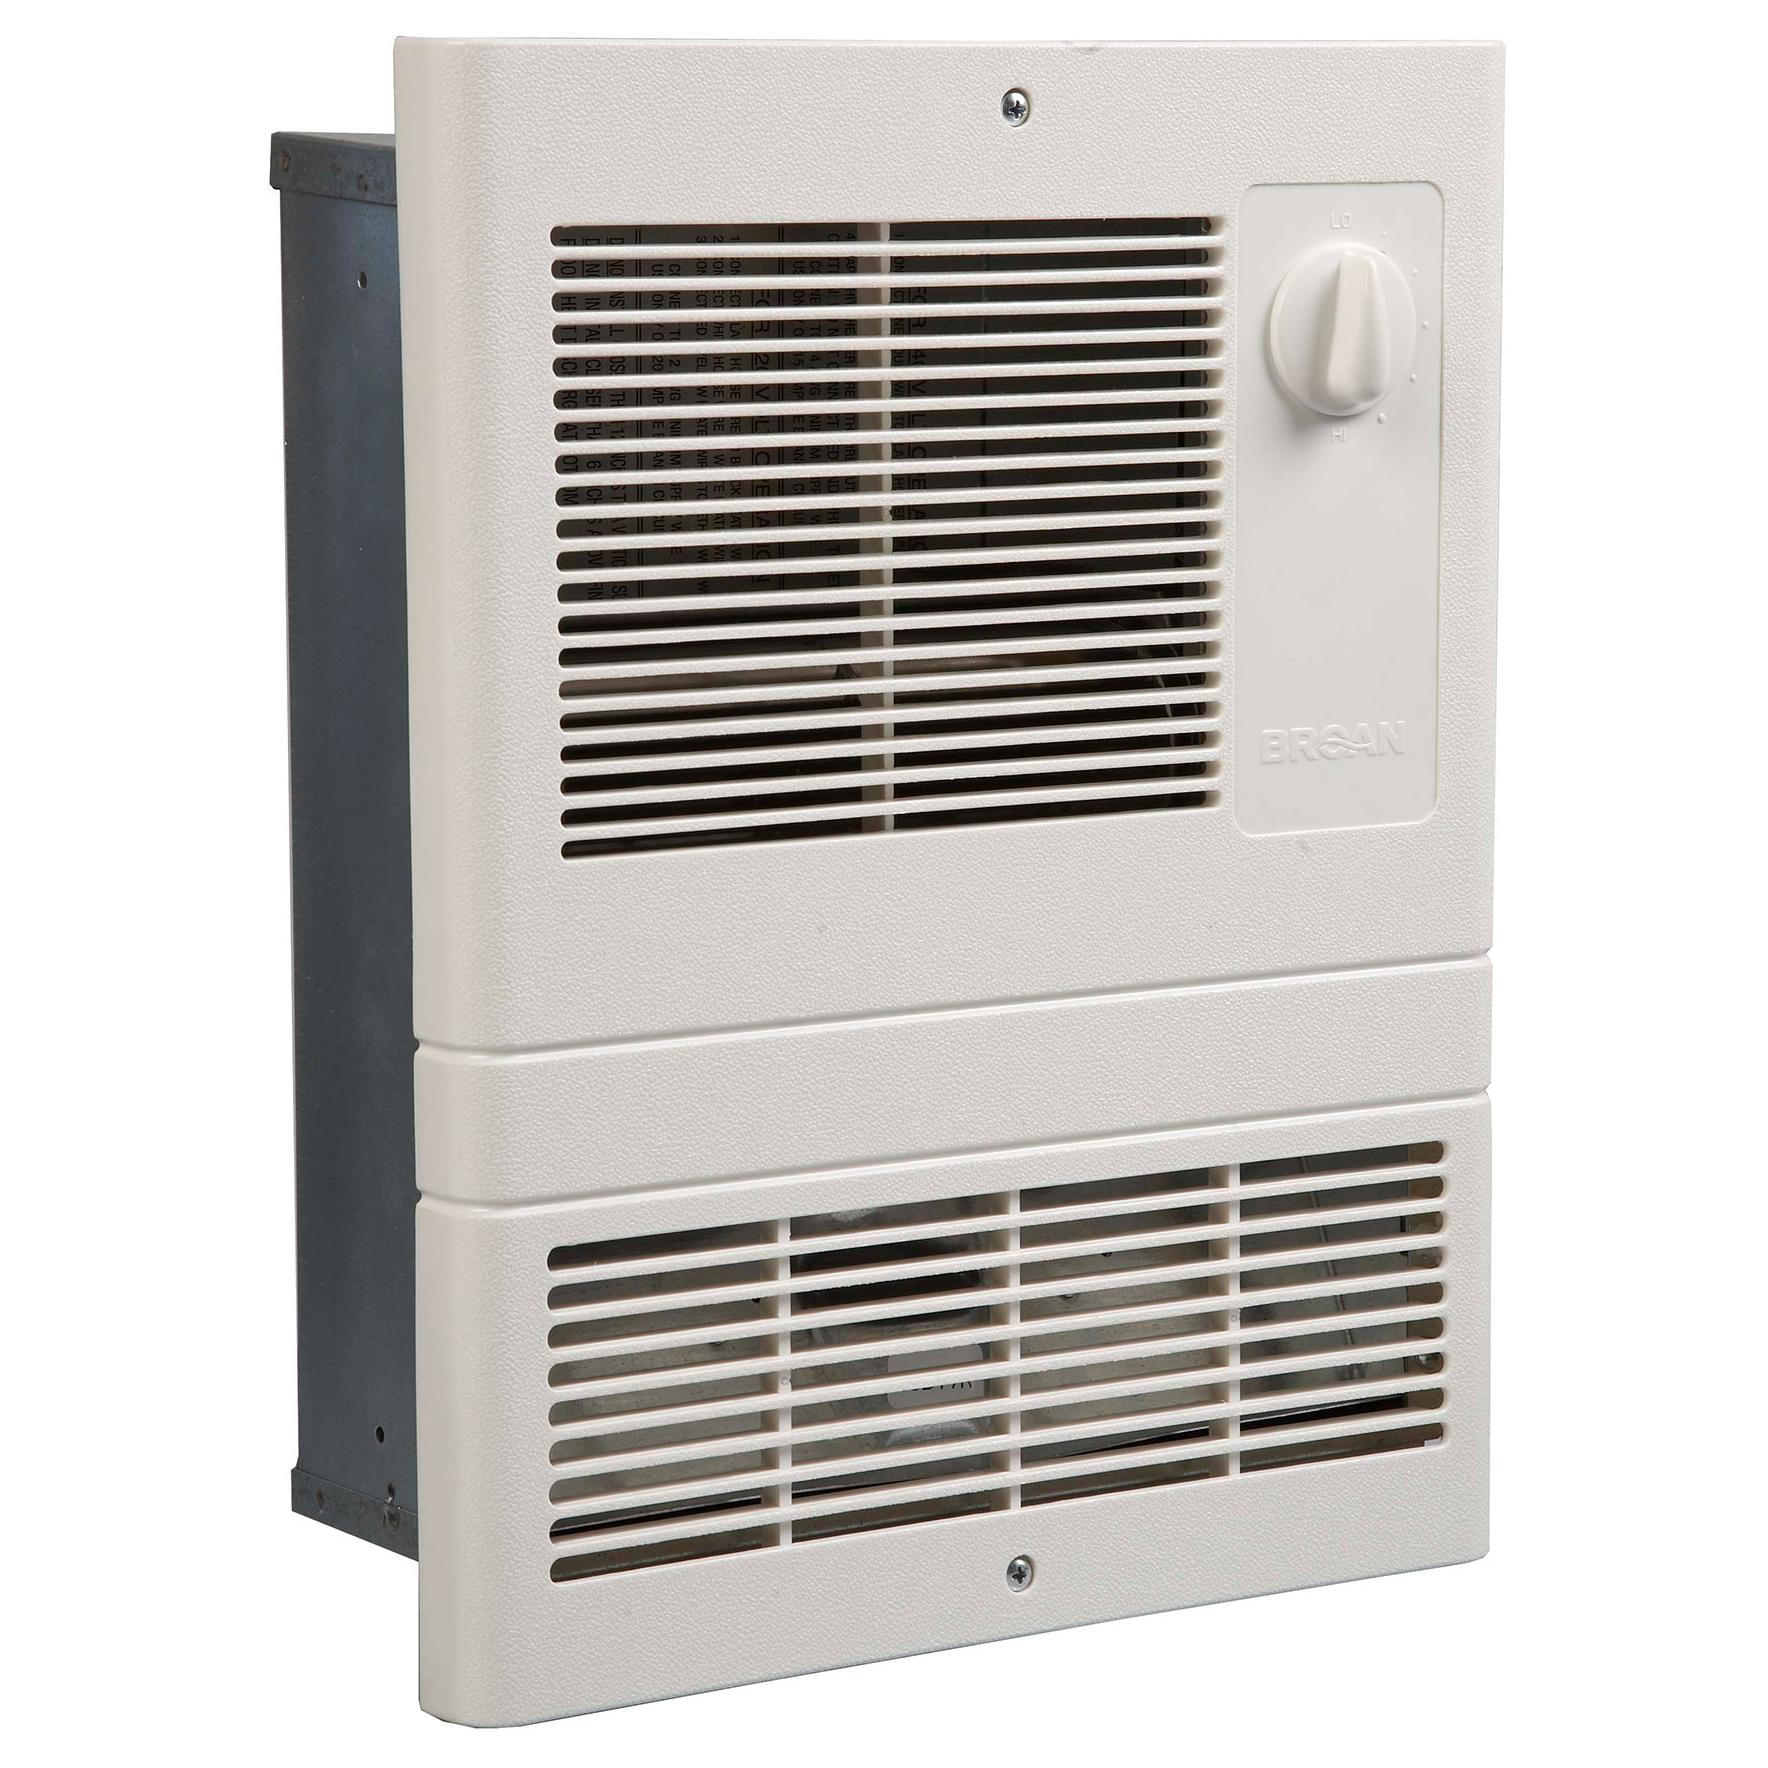 Broan Wall Heater White Grille Heater With Built In